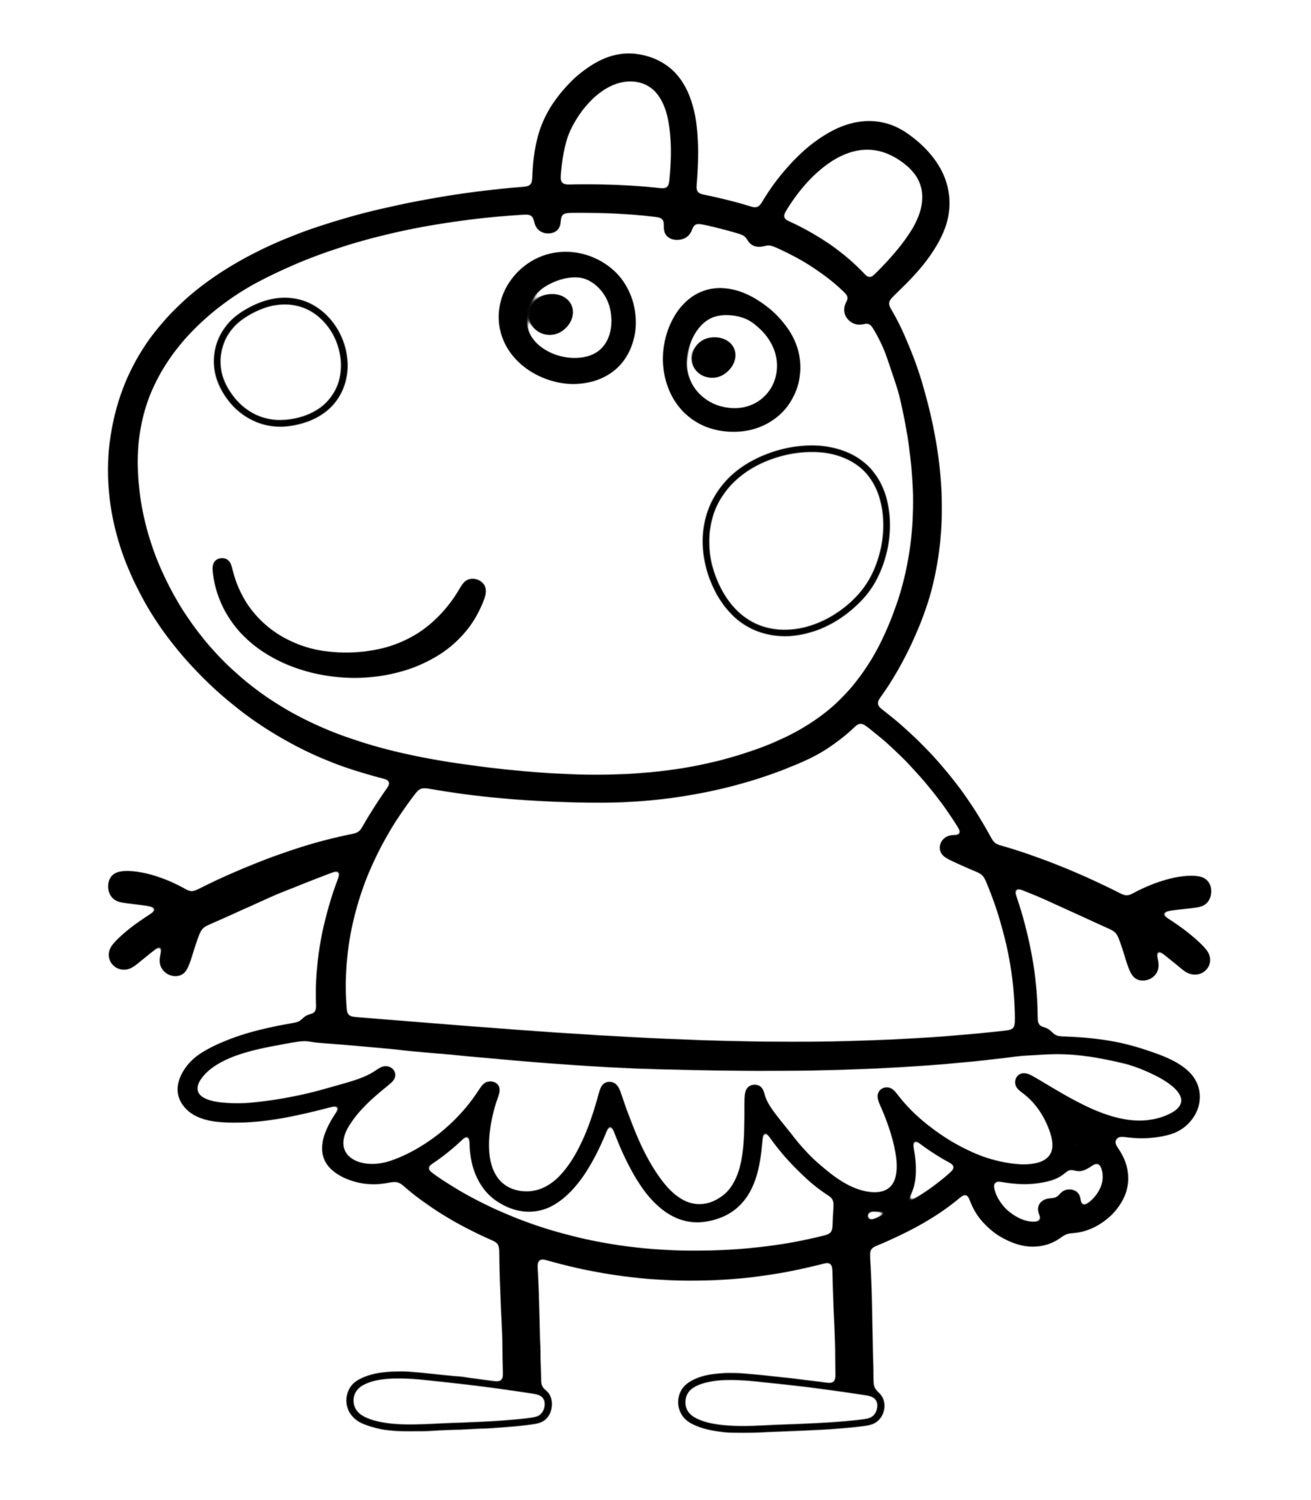 Suzy Sheep In Peppa Pig Coloring Page